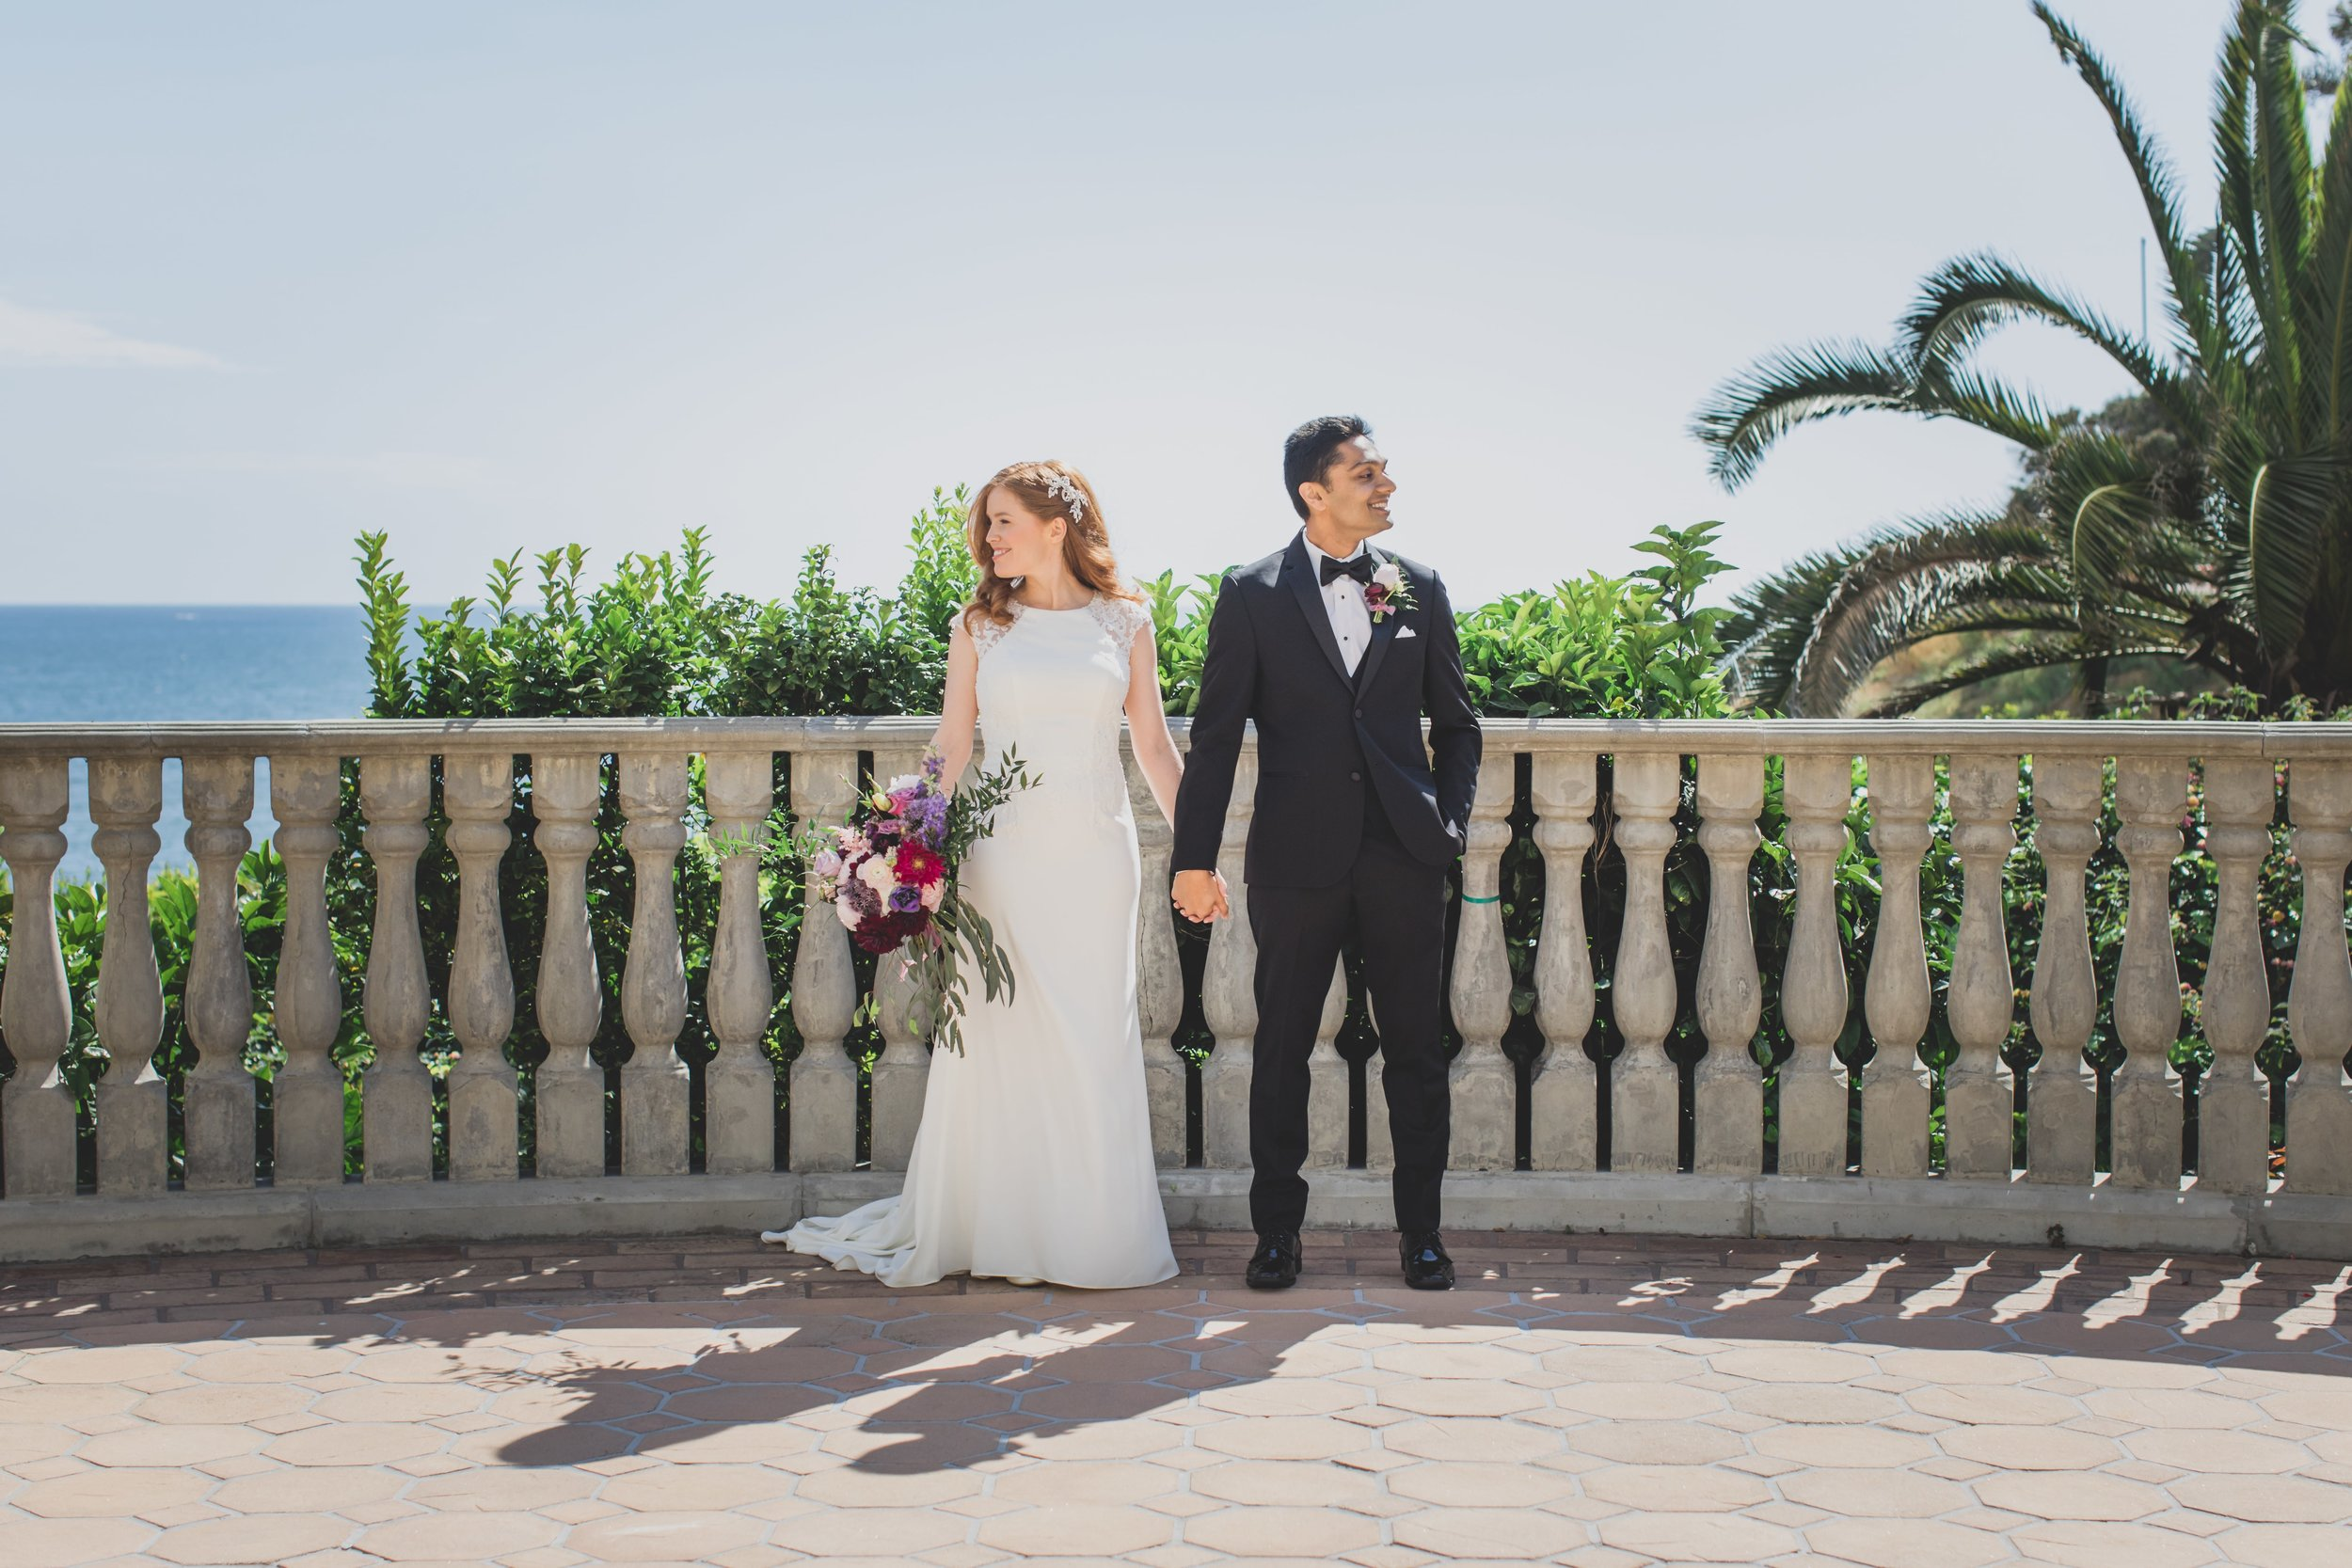 Wedding Photography - Pacific Palisades, CA - Bel Air Bay Club - Bride and groom standing on a sunlit balcony overlooking the ocean.